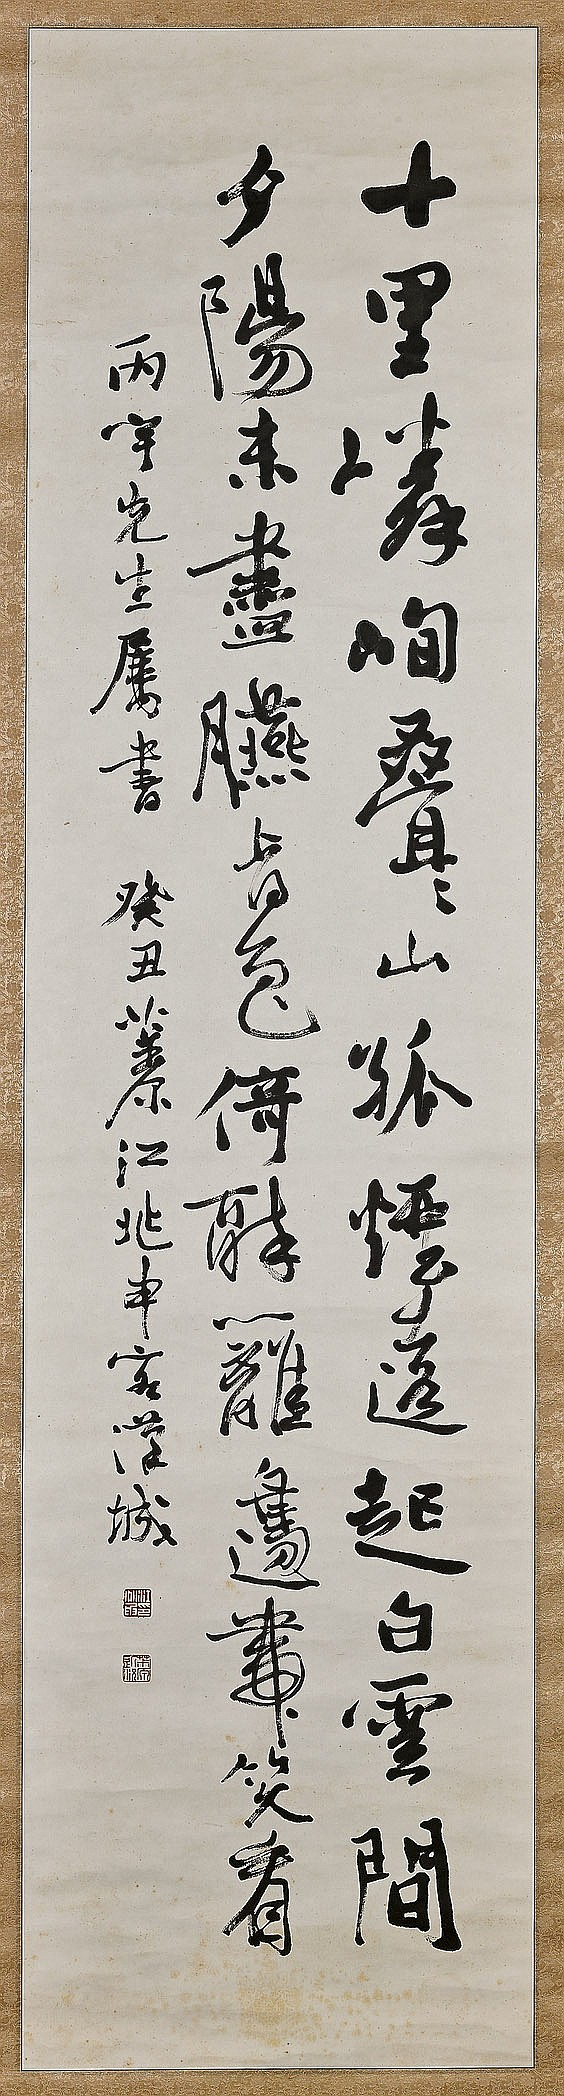 CHINESE INK ON PAPER CALLIGRAPHY POEM